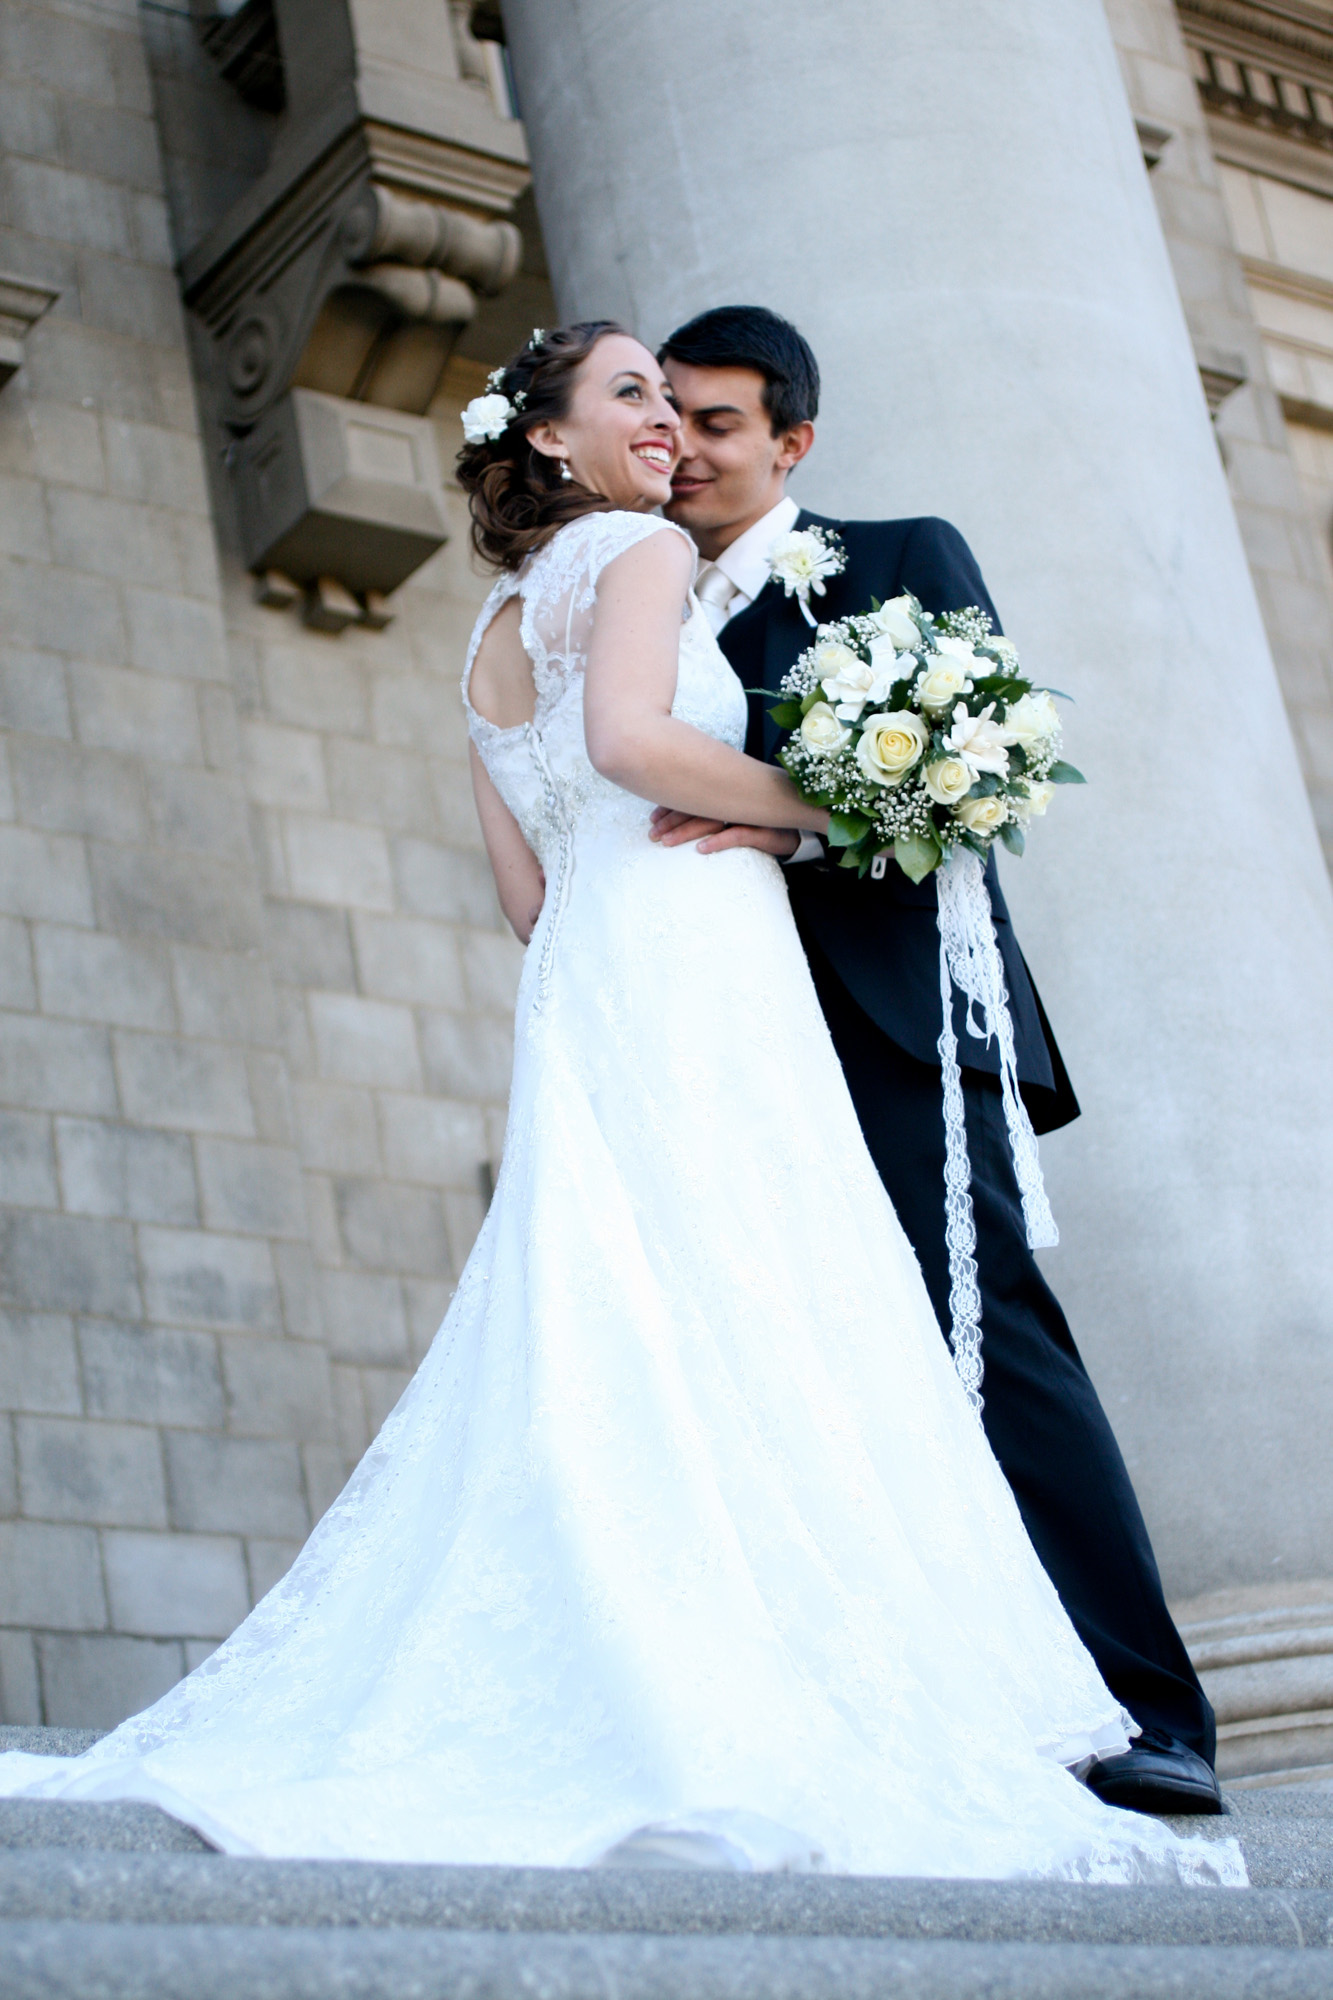 architecture framing bride and groom